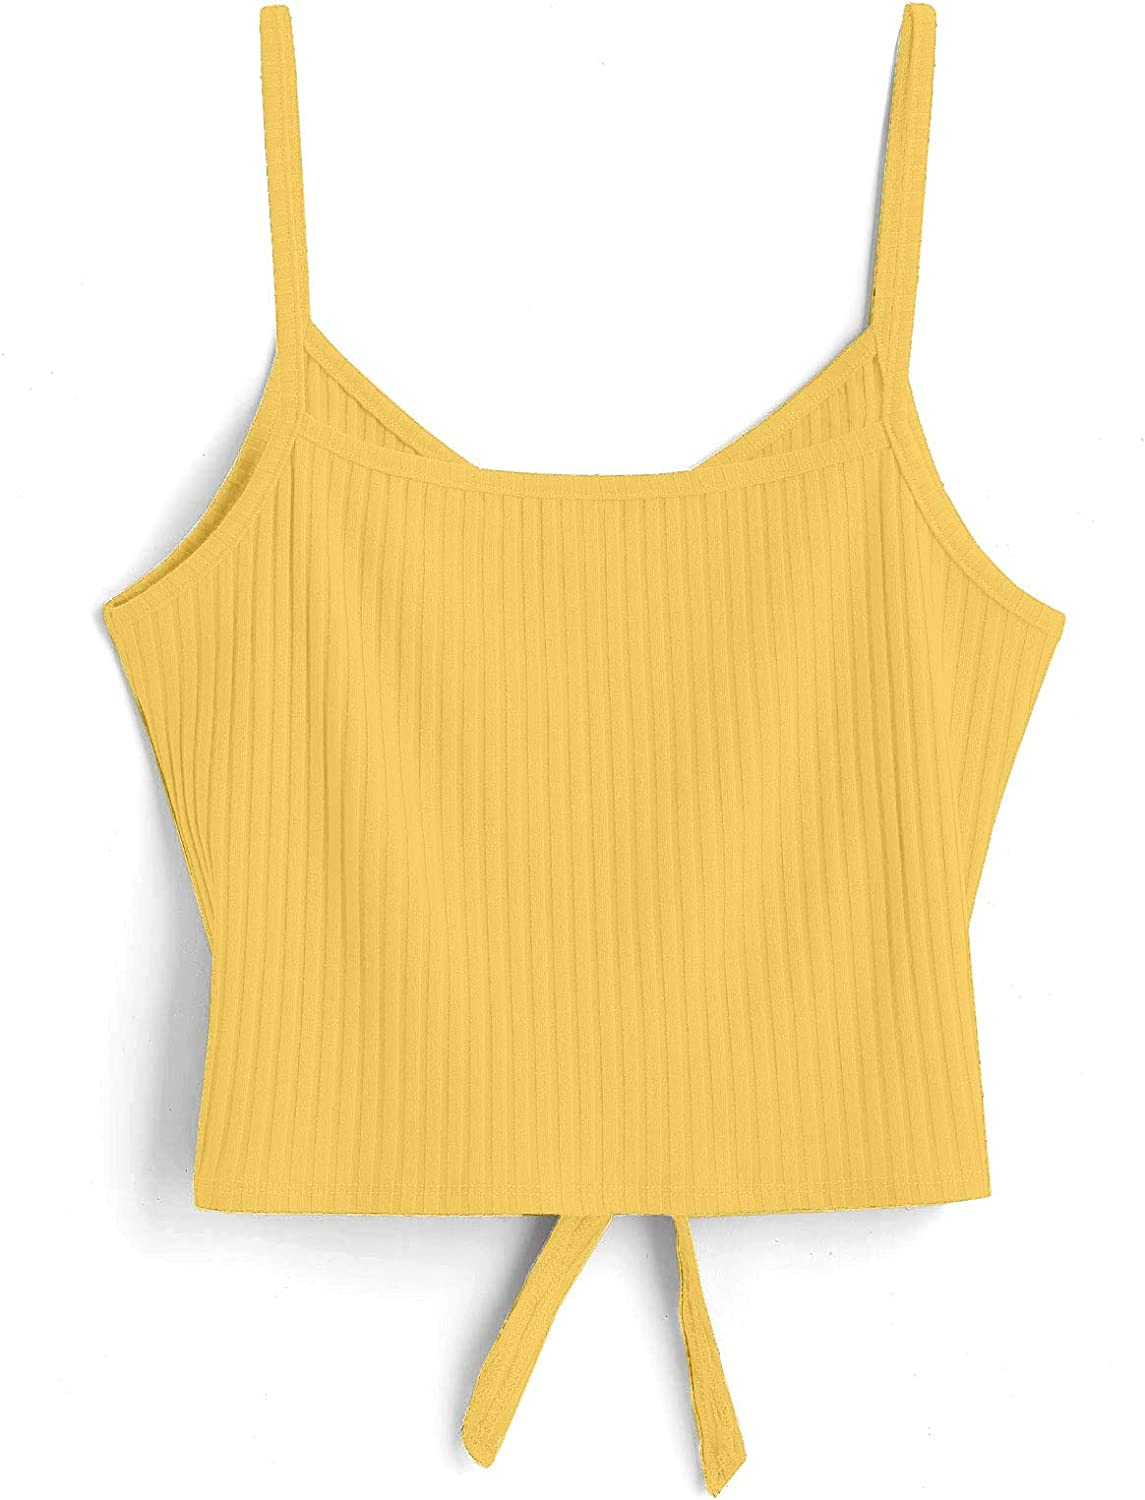 ZAFUL Women's Tank Top Tie Knot Front V Neck Casual Sleeveless Strappy Crop Cami Tops Camisole